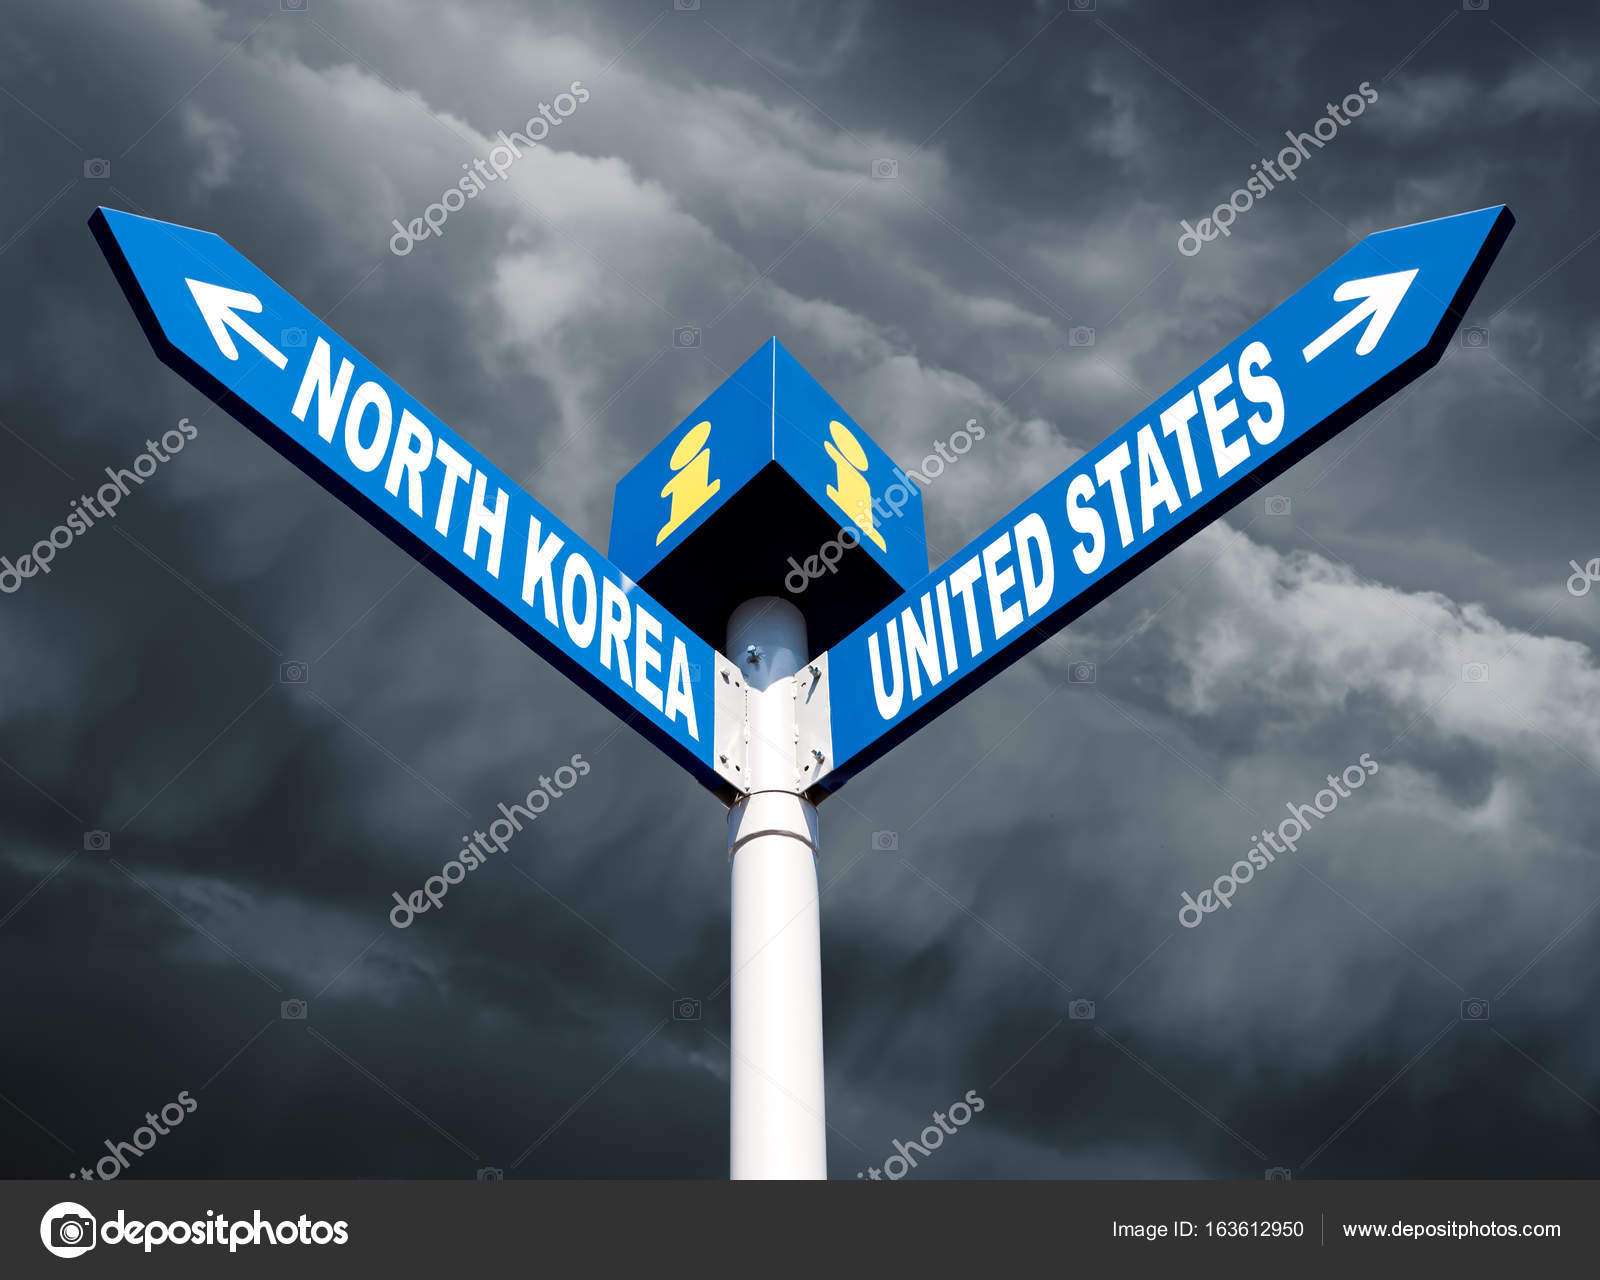 the struggle between the relationships in the united states The geopolitics of brazil: an emergent power's struggle with geography  the  second exception to the tropical dominance of south america is the temperate  lands of  upon its southern neighbors that weakened intra-brazilian  relationships.